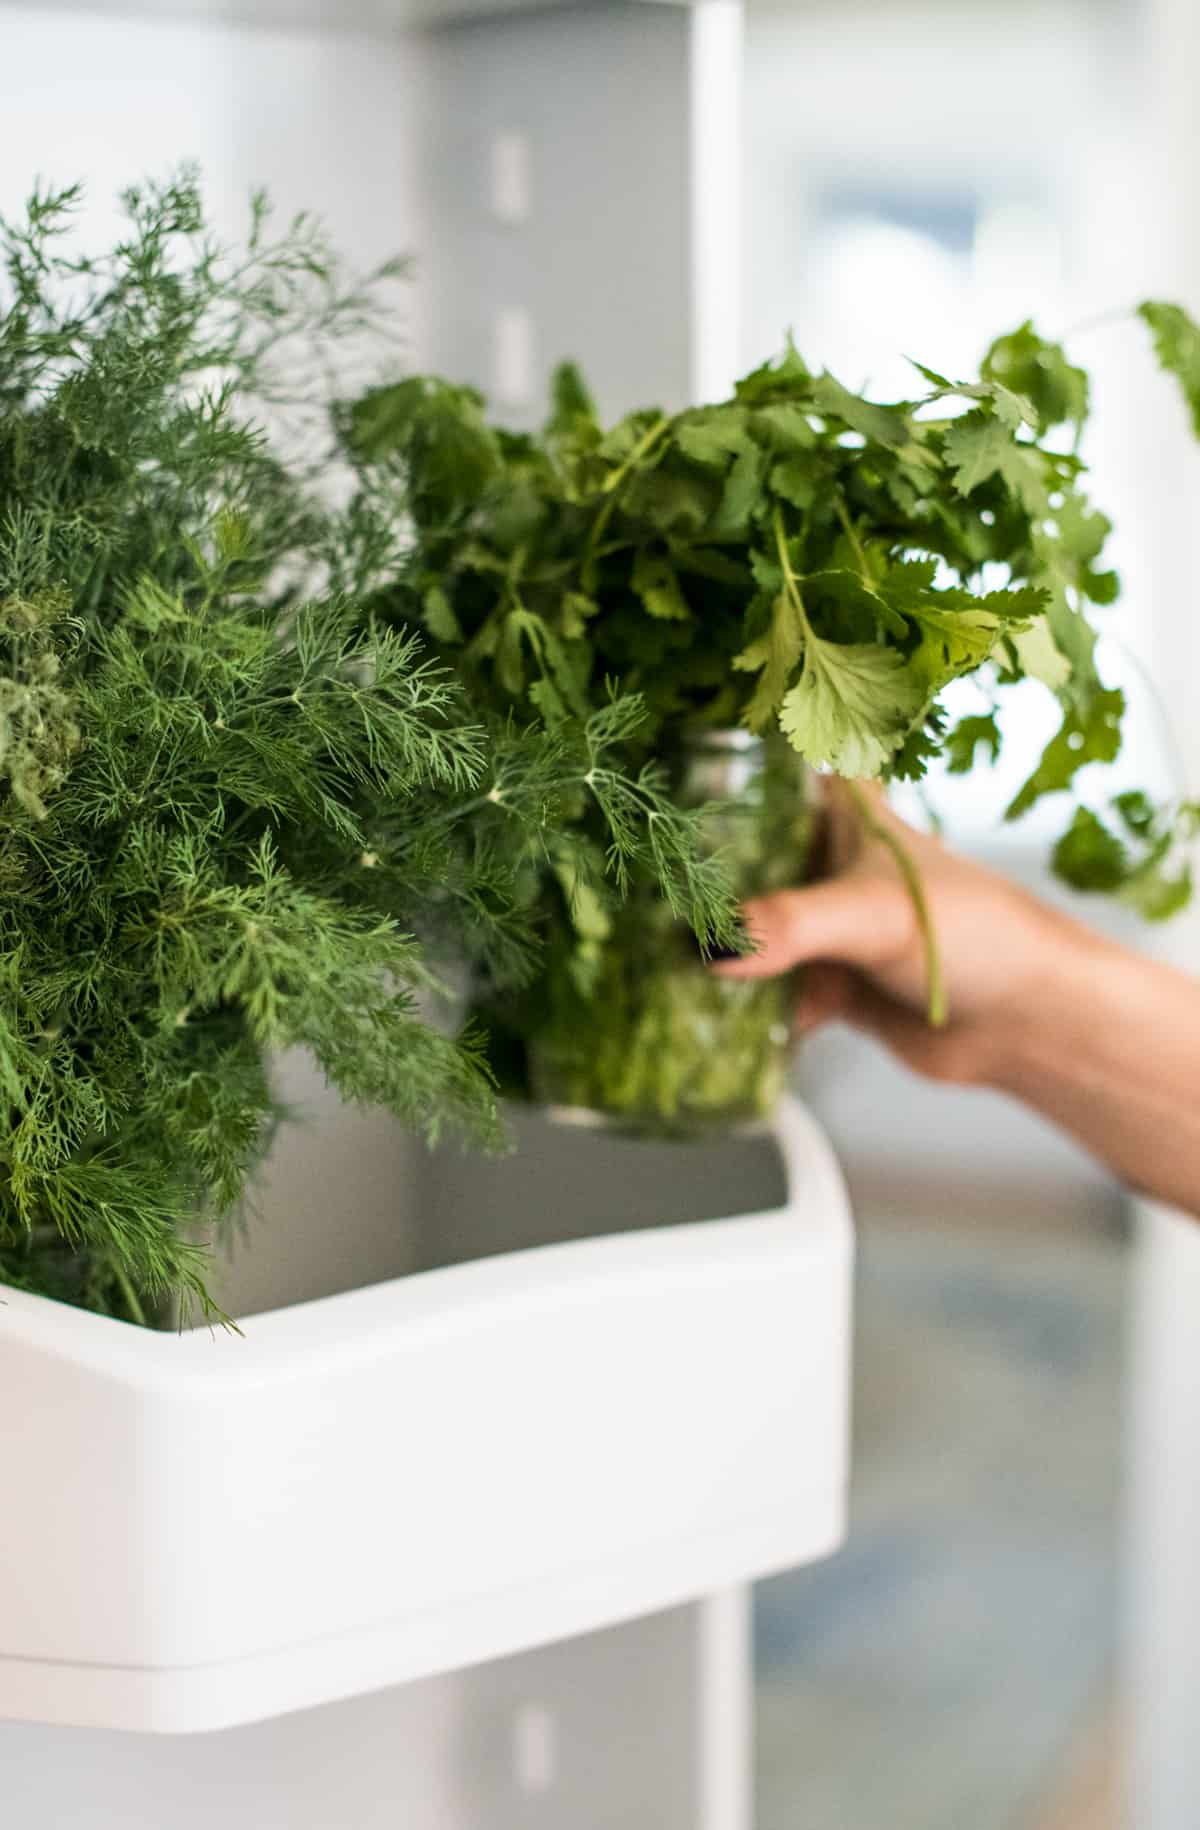 how to store fresh herbs so they last